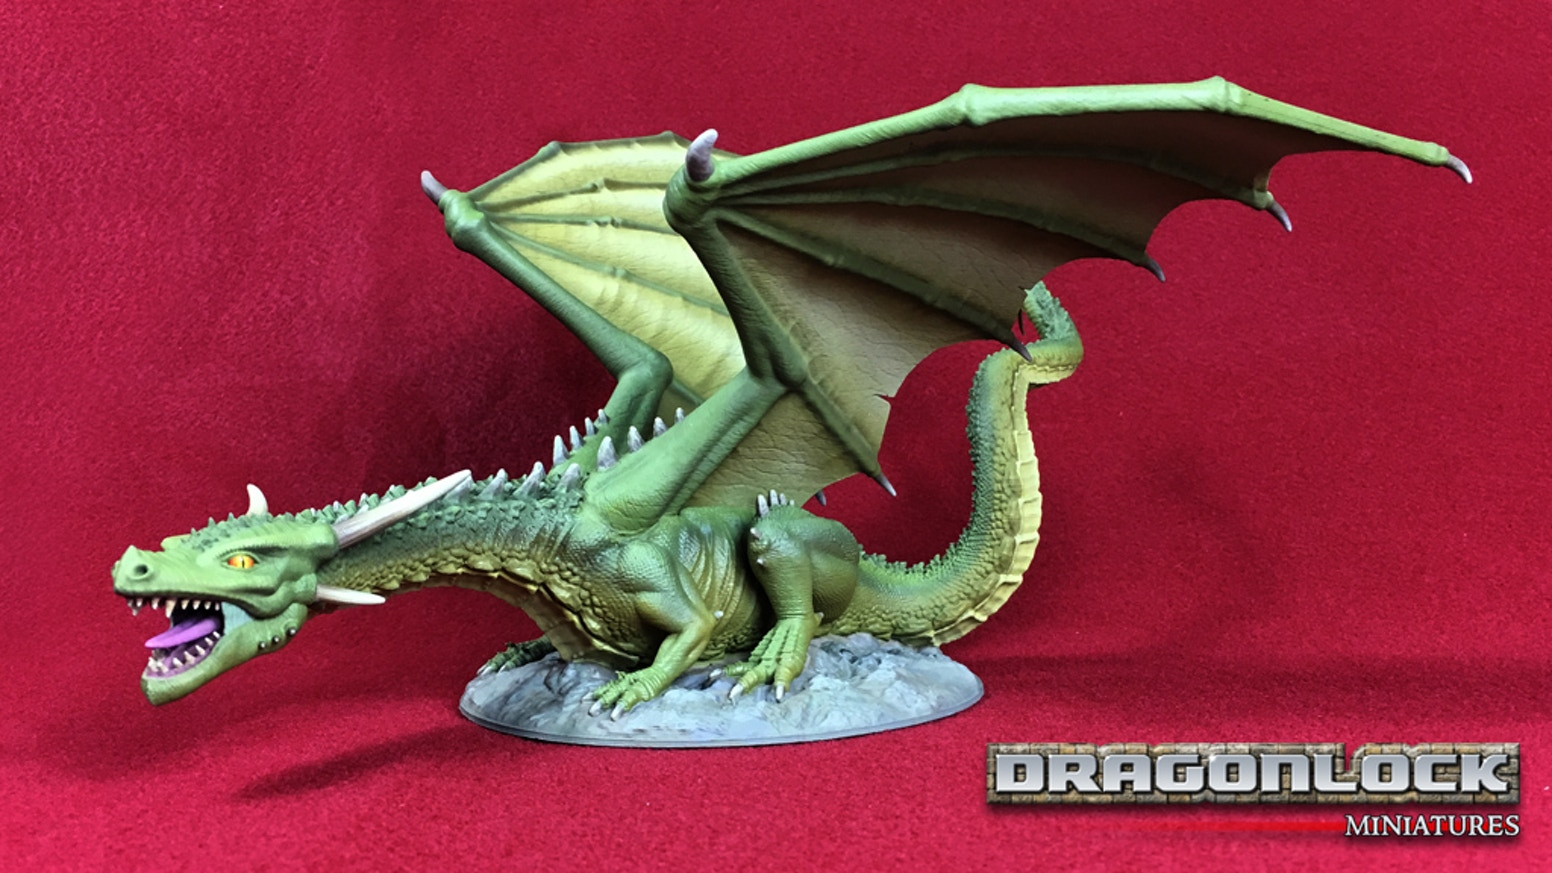 Dragonlock™ 3D Printable Miniatures is a collection of fantasy miniatures designed to 3D print without slicer supports.